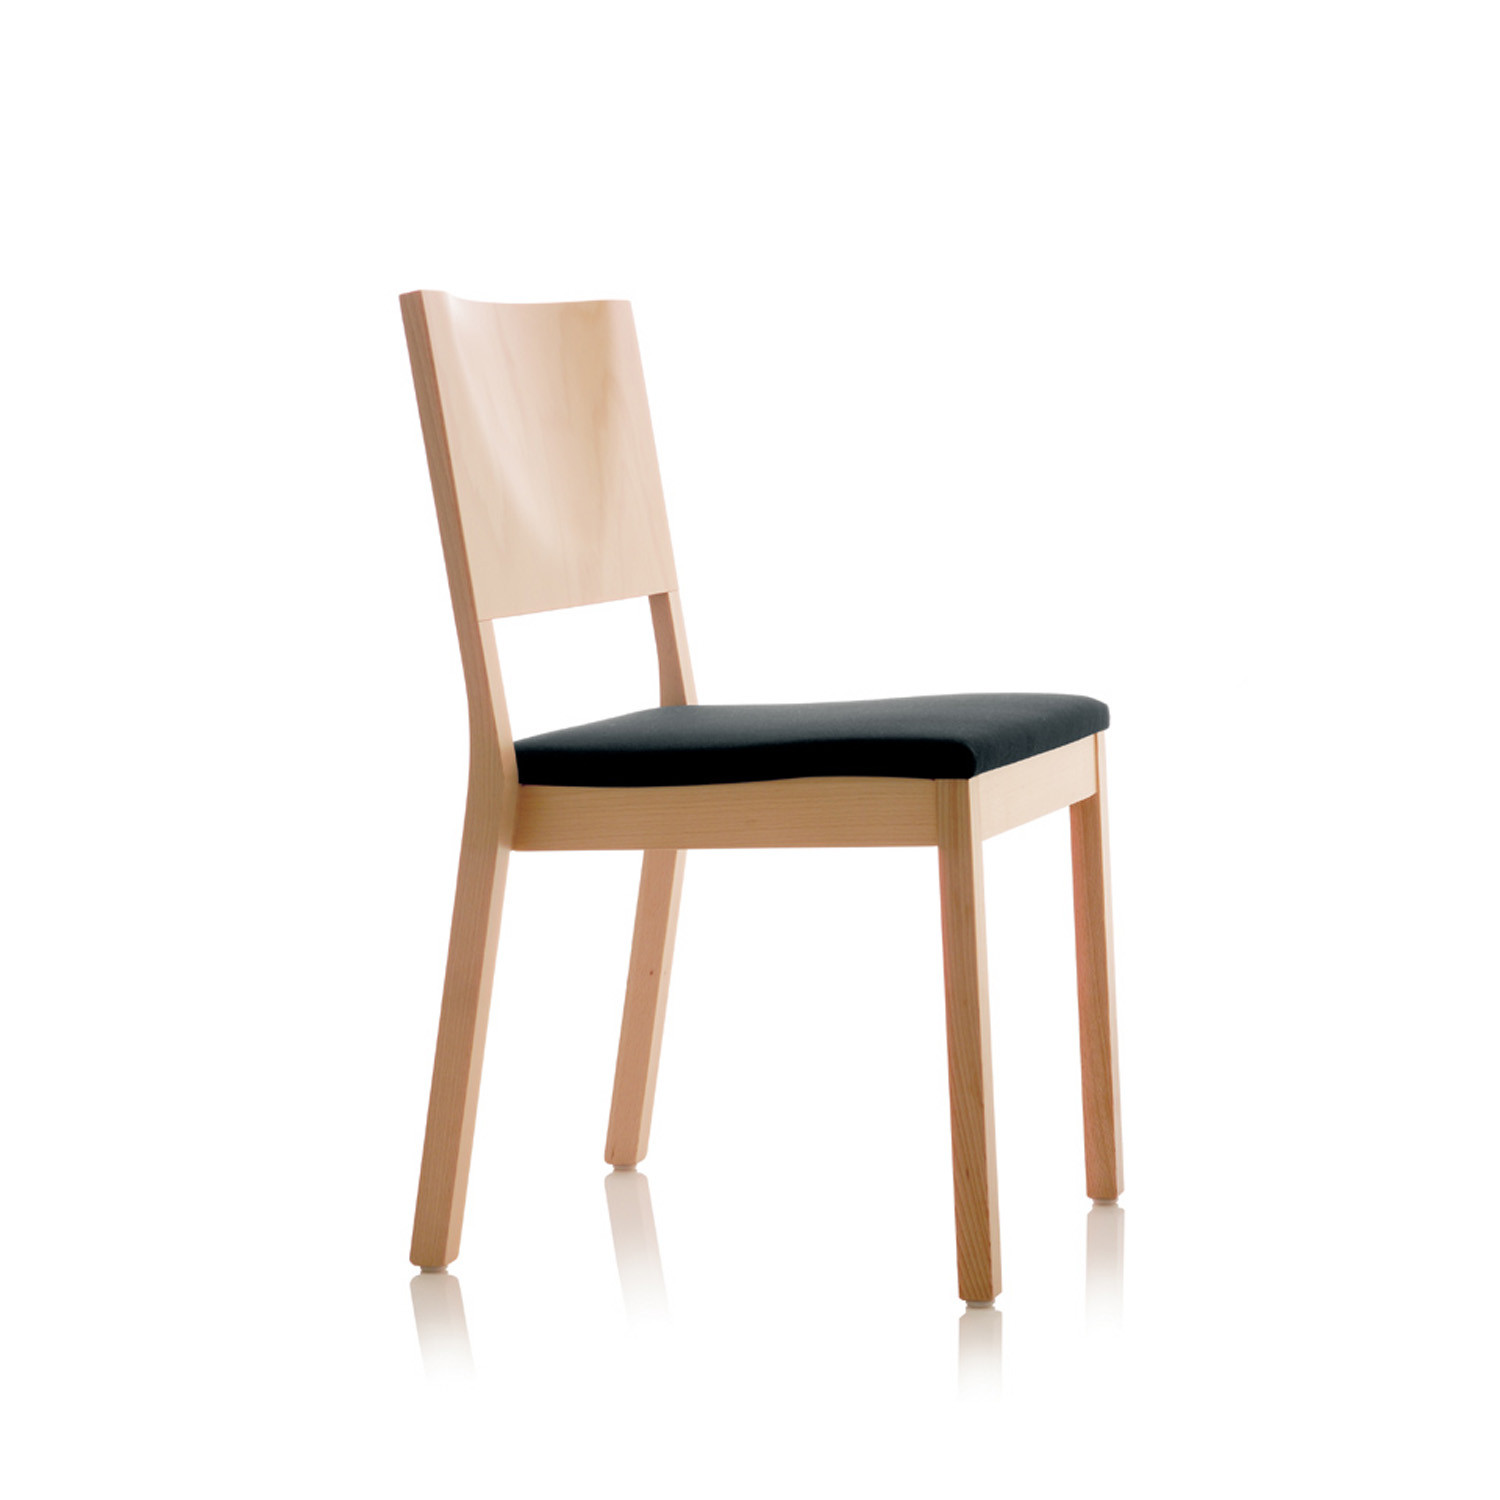 S13 Stacking Chair by Wiesner Hager